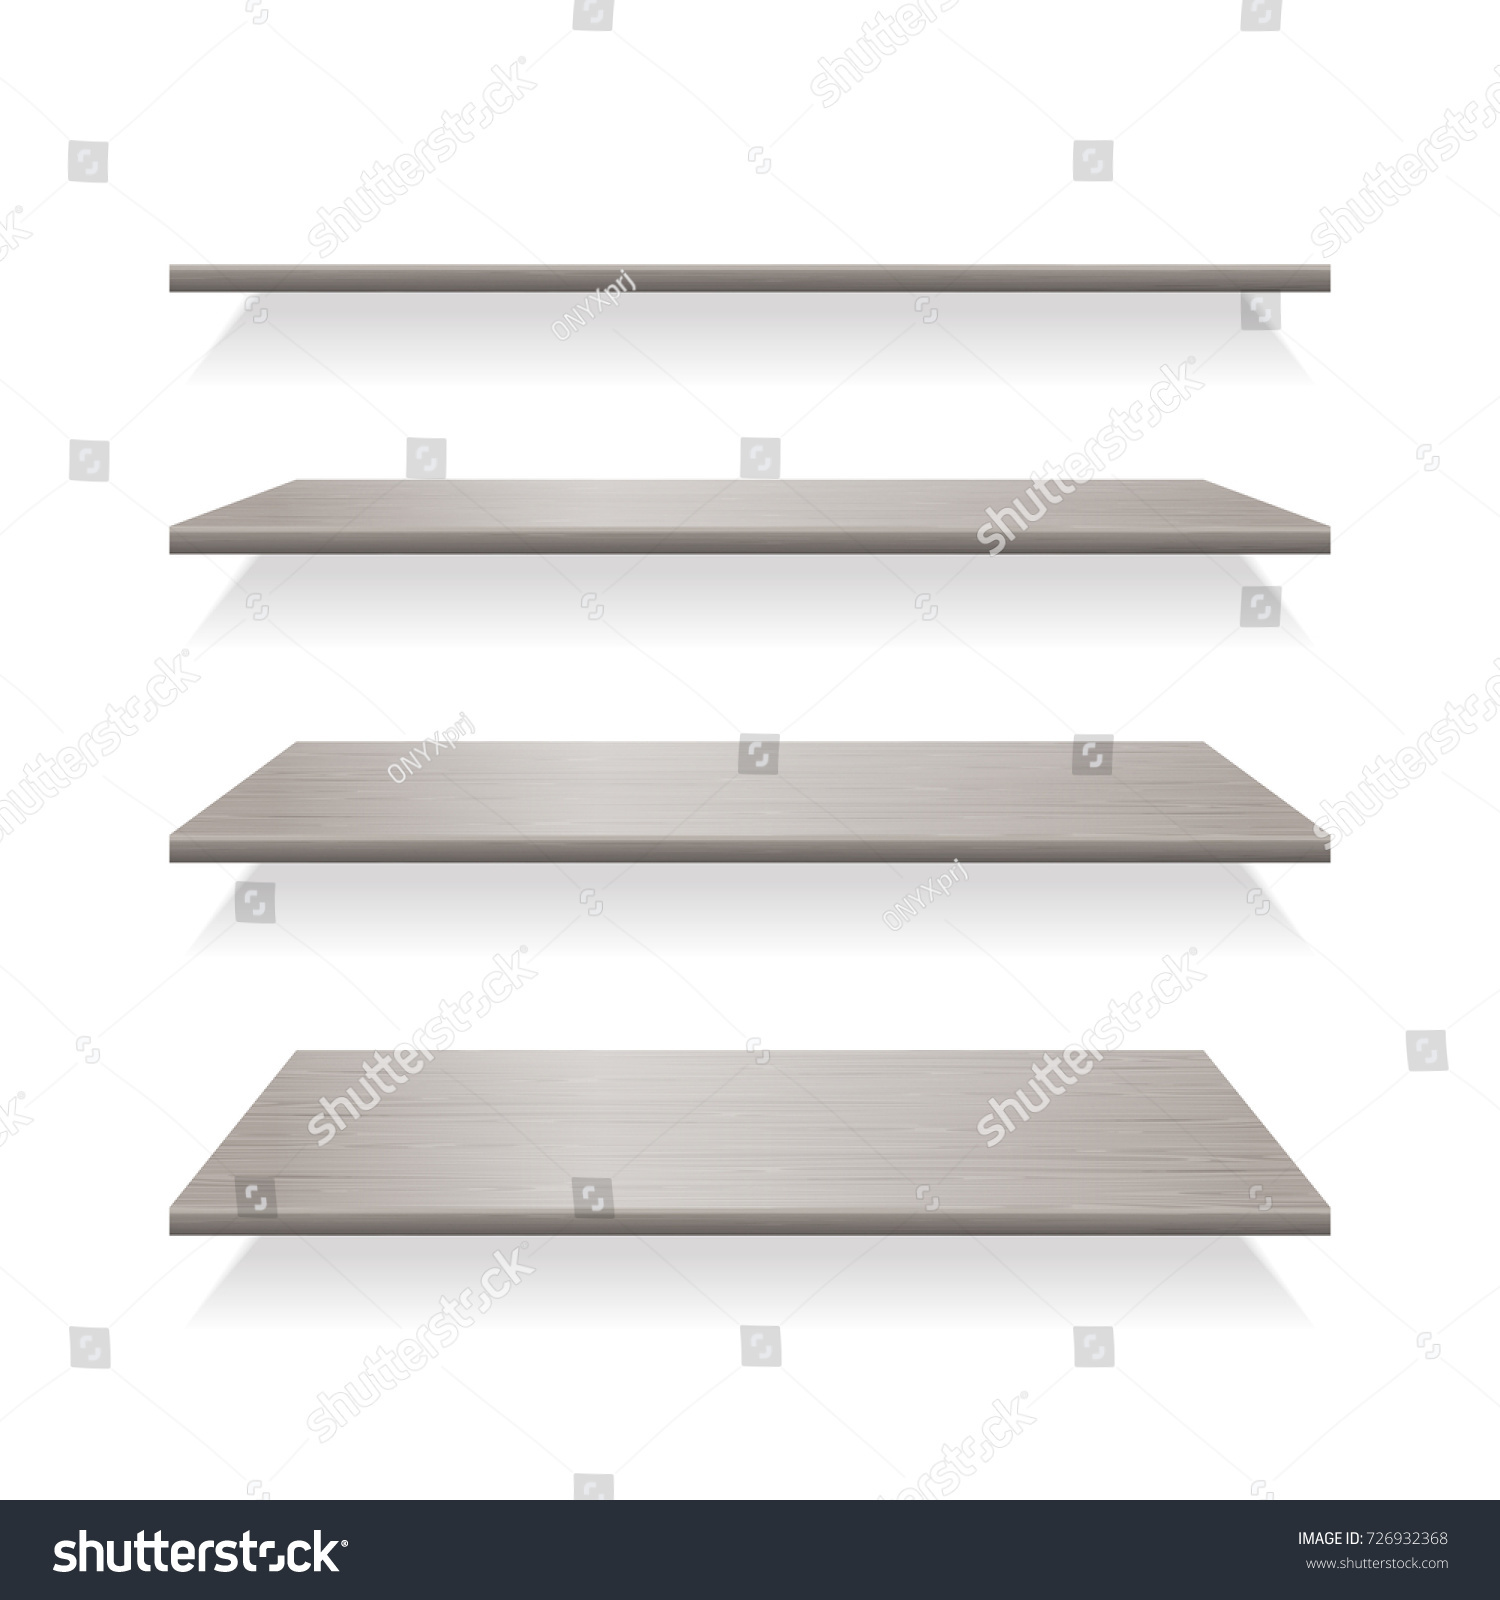 Interior wooden shelves free vector - Gray Wood Shelves With Shadows Shelf Wood For Interior Empty Furniture Vector Illustration